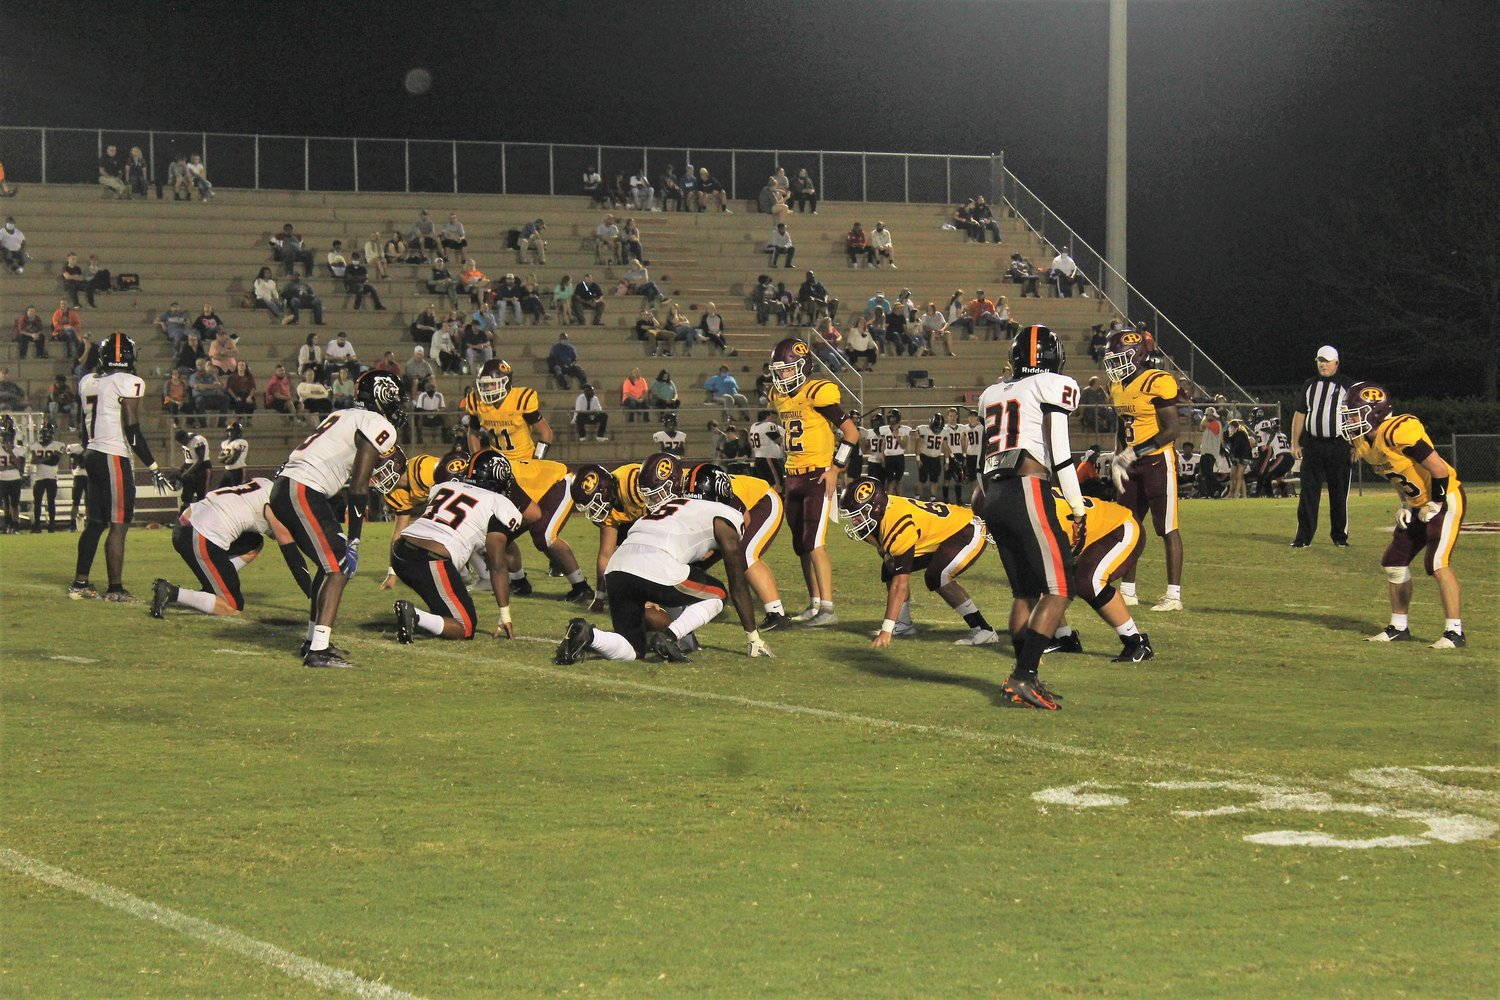 Senior quarterback Grant Driver (12) and the Robertsdale Golden Bears line up against the Baldwin County High Tigers Friday night at J.D. Sellars Stadium in Robertsdale.